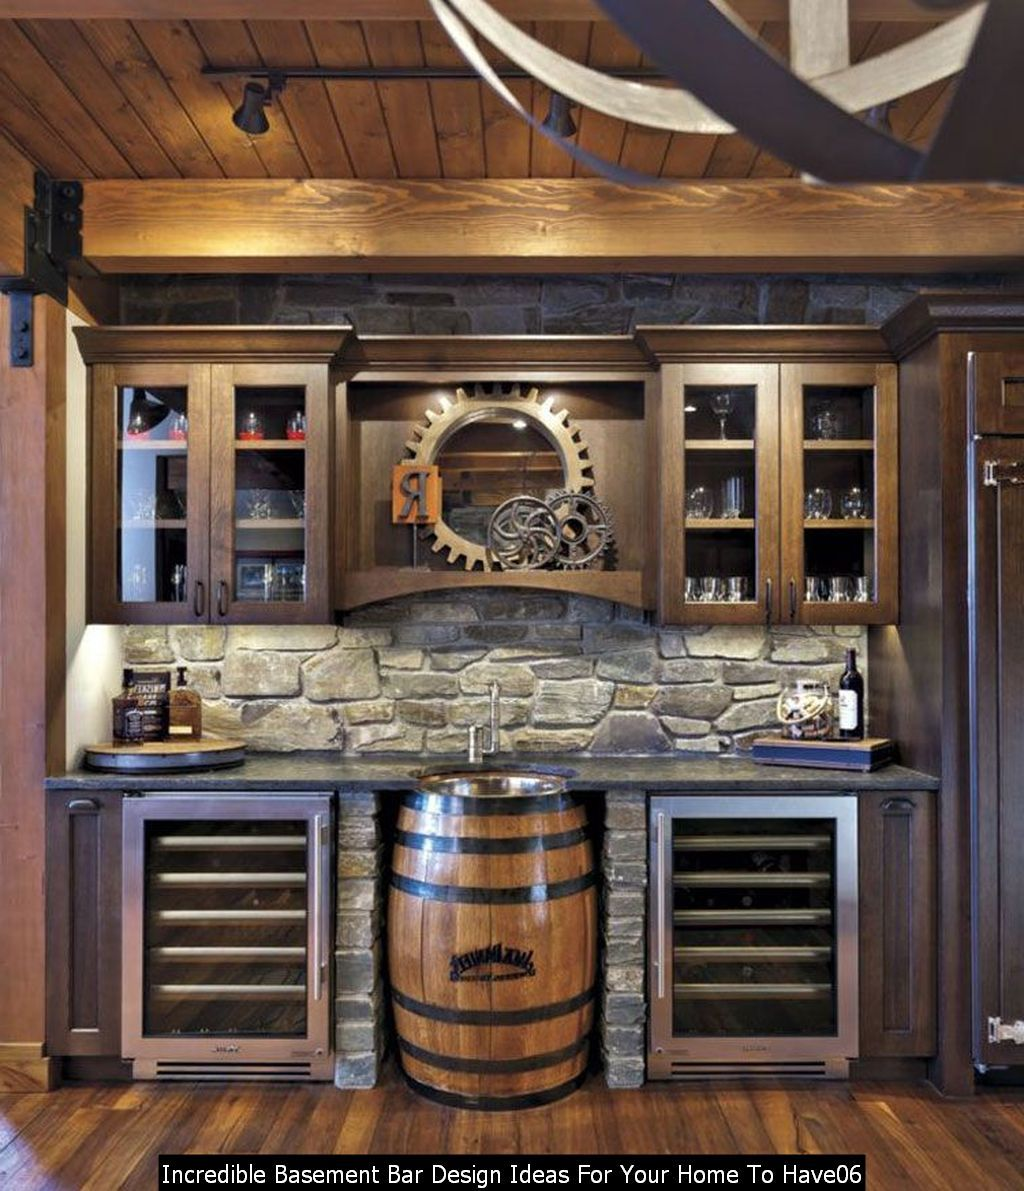 Home Design Basement Ideas: DIY Incredible Basement Bar Design Ideas For Your Home To